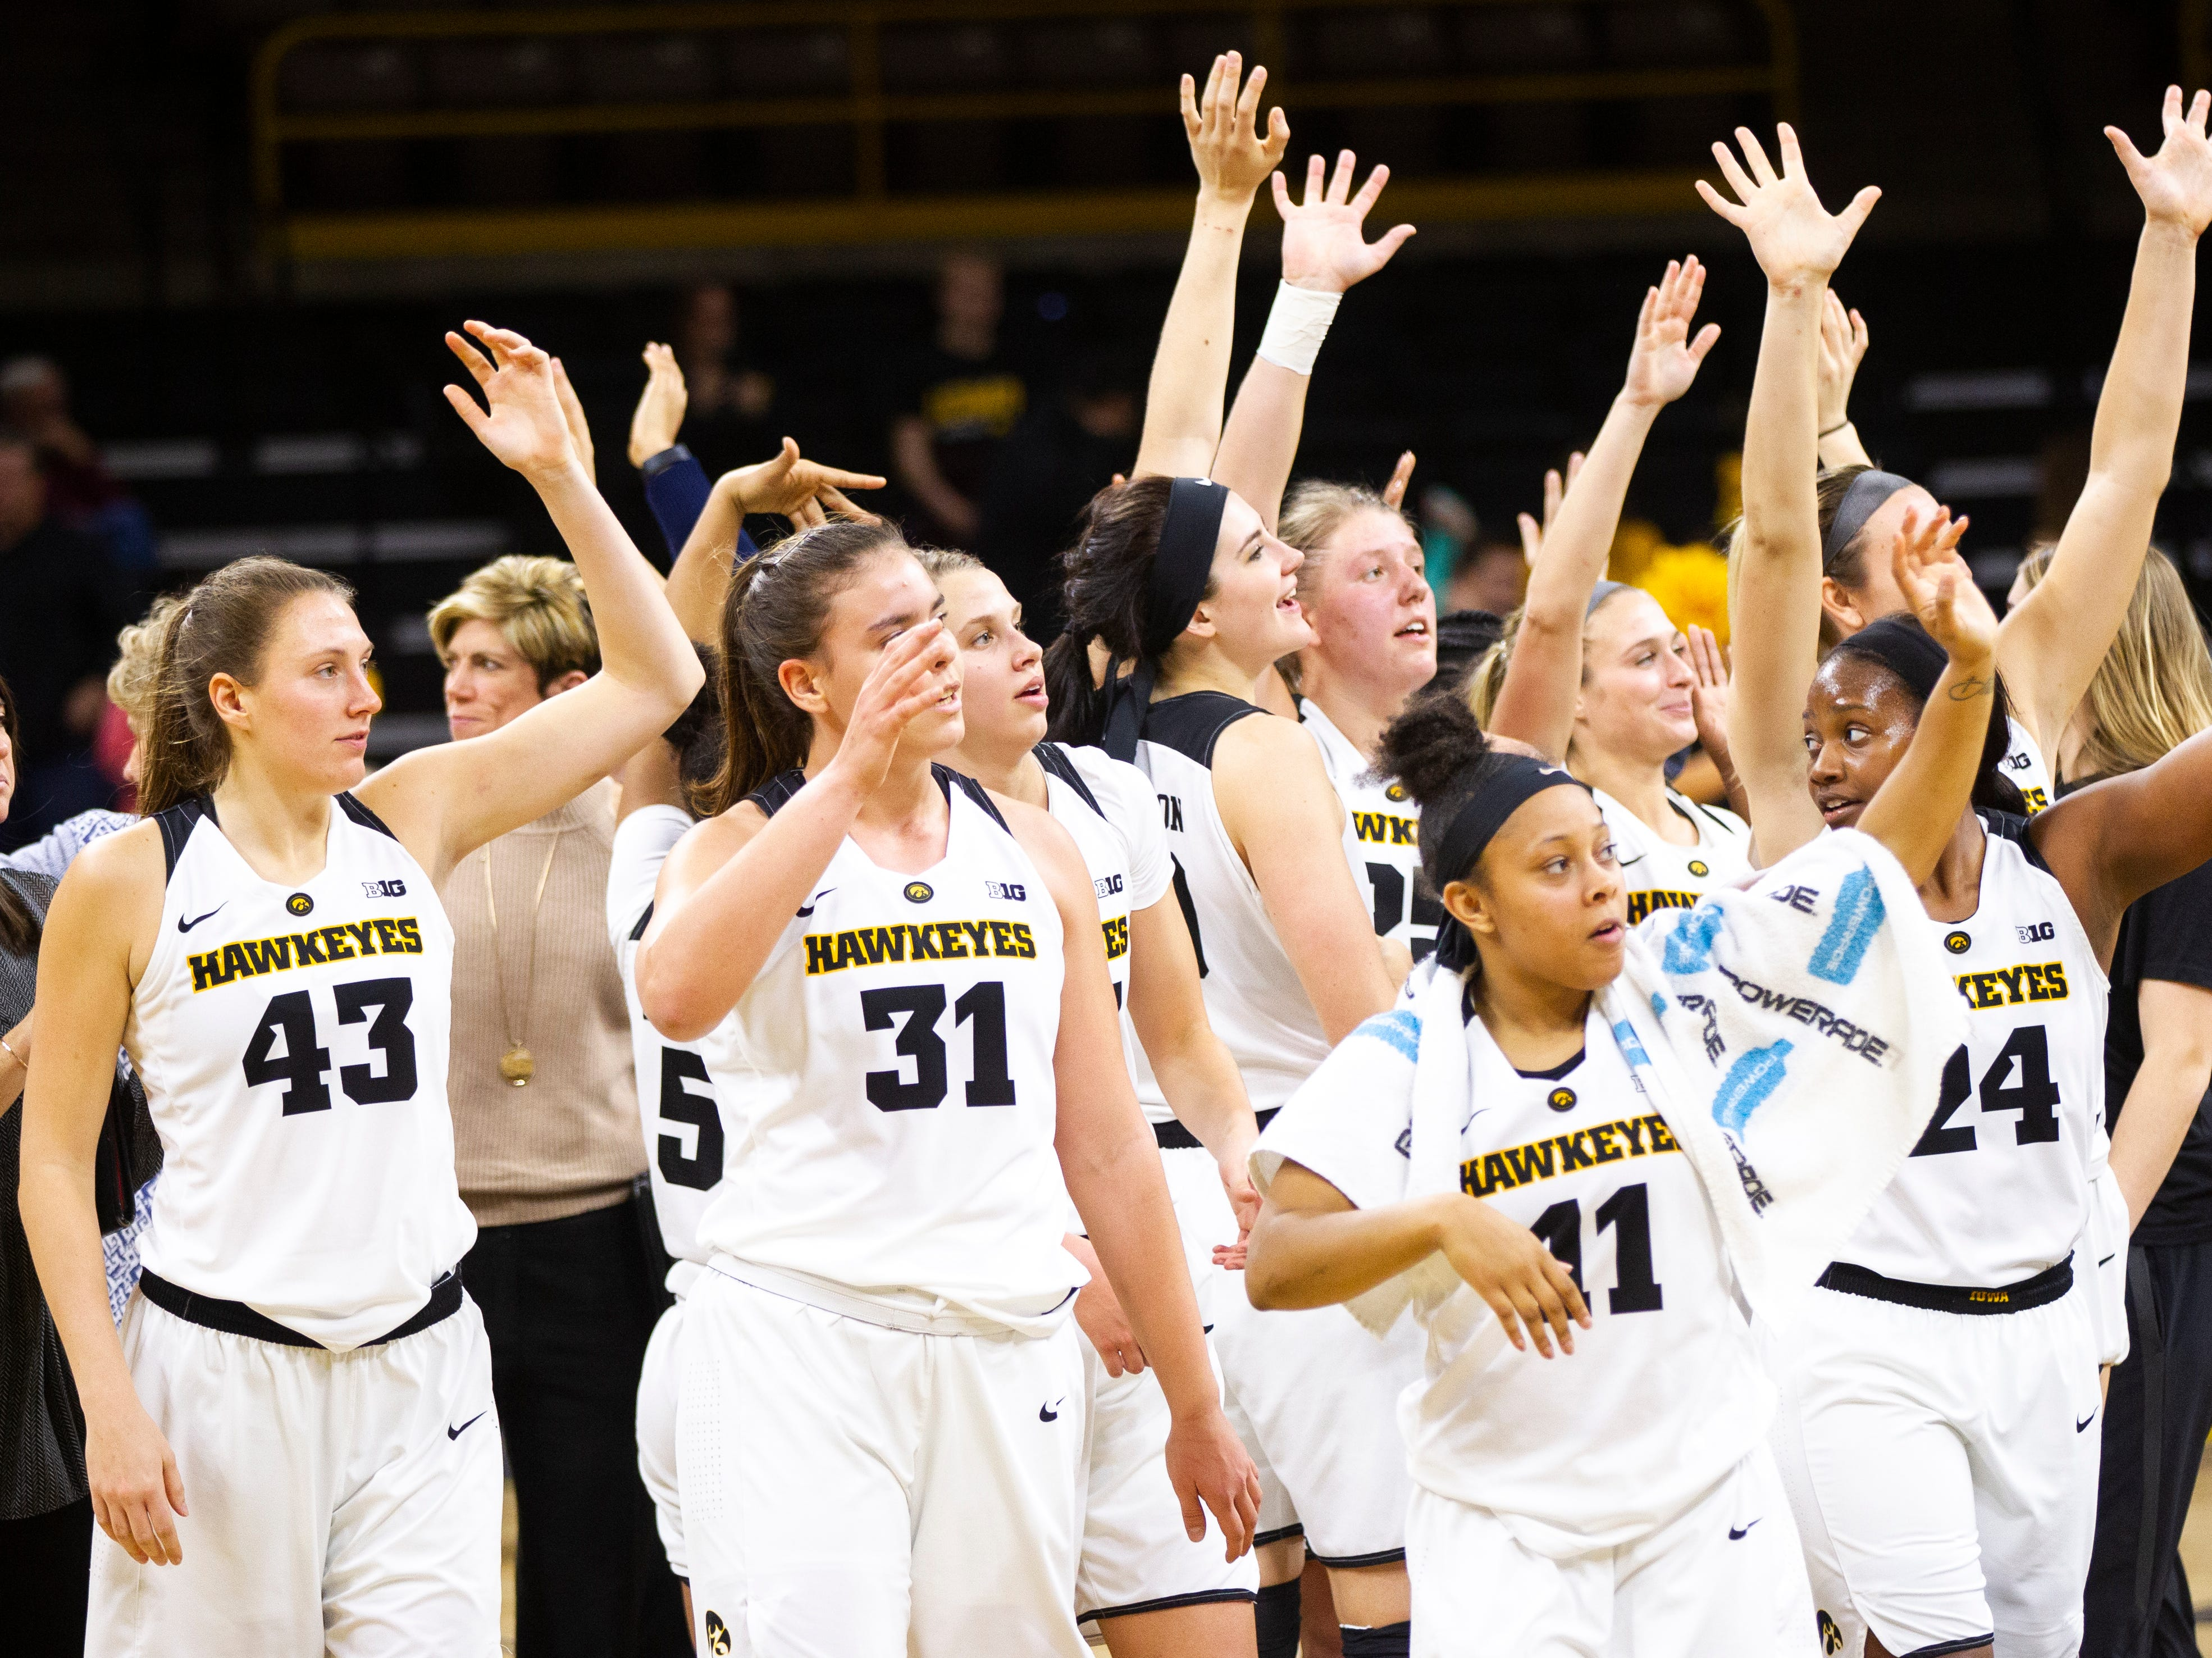 Iowa Hawkeyes players wave to fans after an NCAA women's basketball game on Saturday, Nov. 17, 2018, at Carver-Hawkeye Arena in Iowa City.